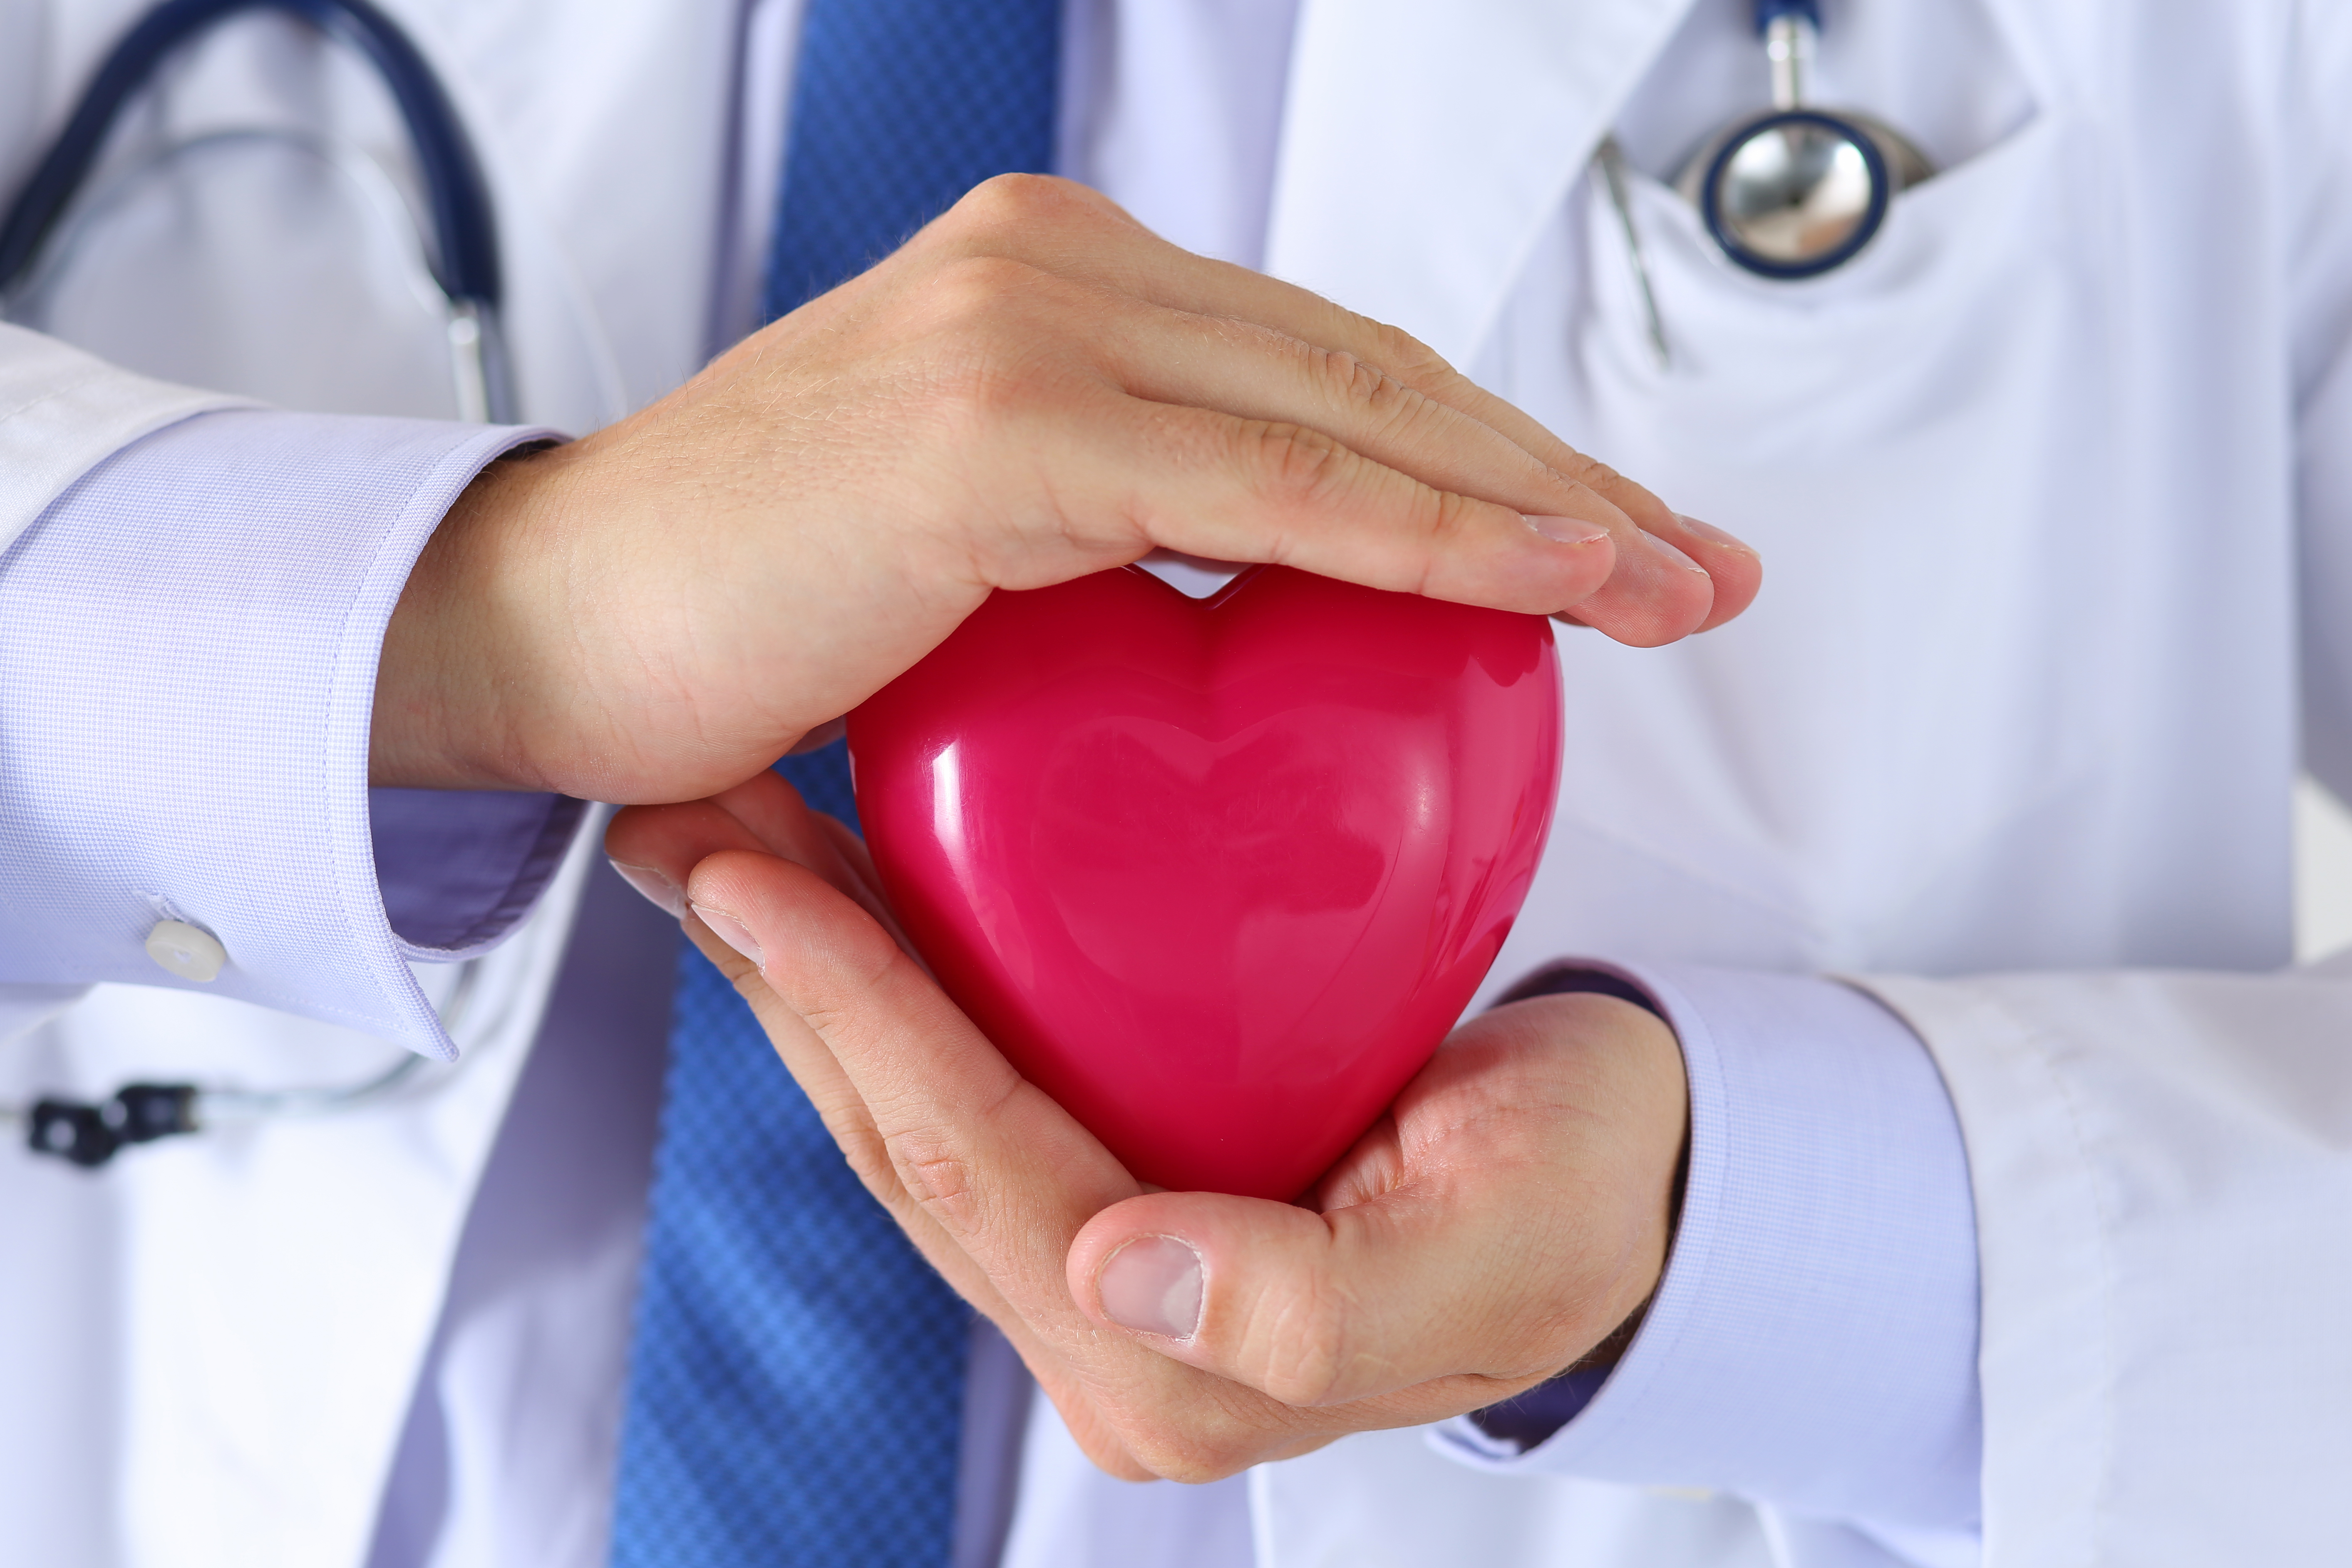 Male medicine doctor hands holding and covering red toy heart closeup. Medical help, cardiology care, health, prophylaxis, prevention, insurance, surgery and resuscitation concept